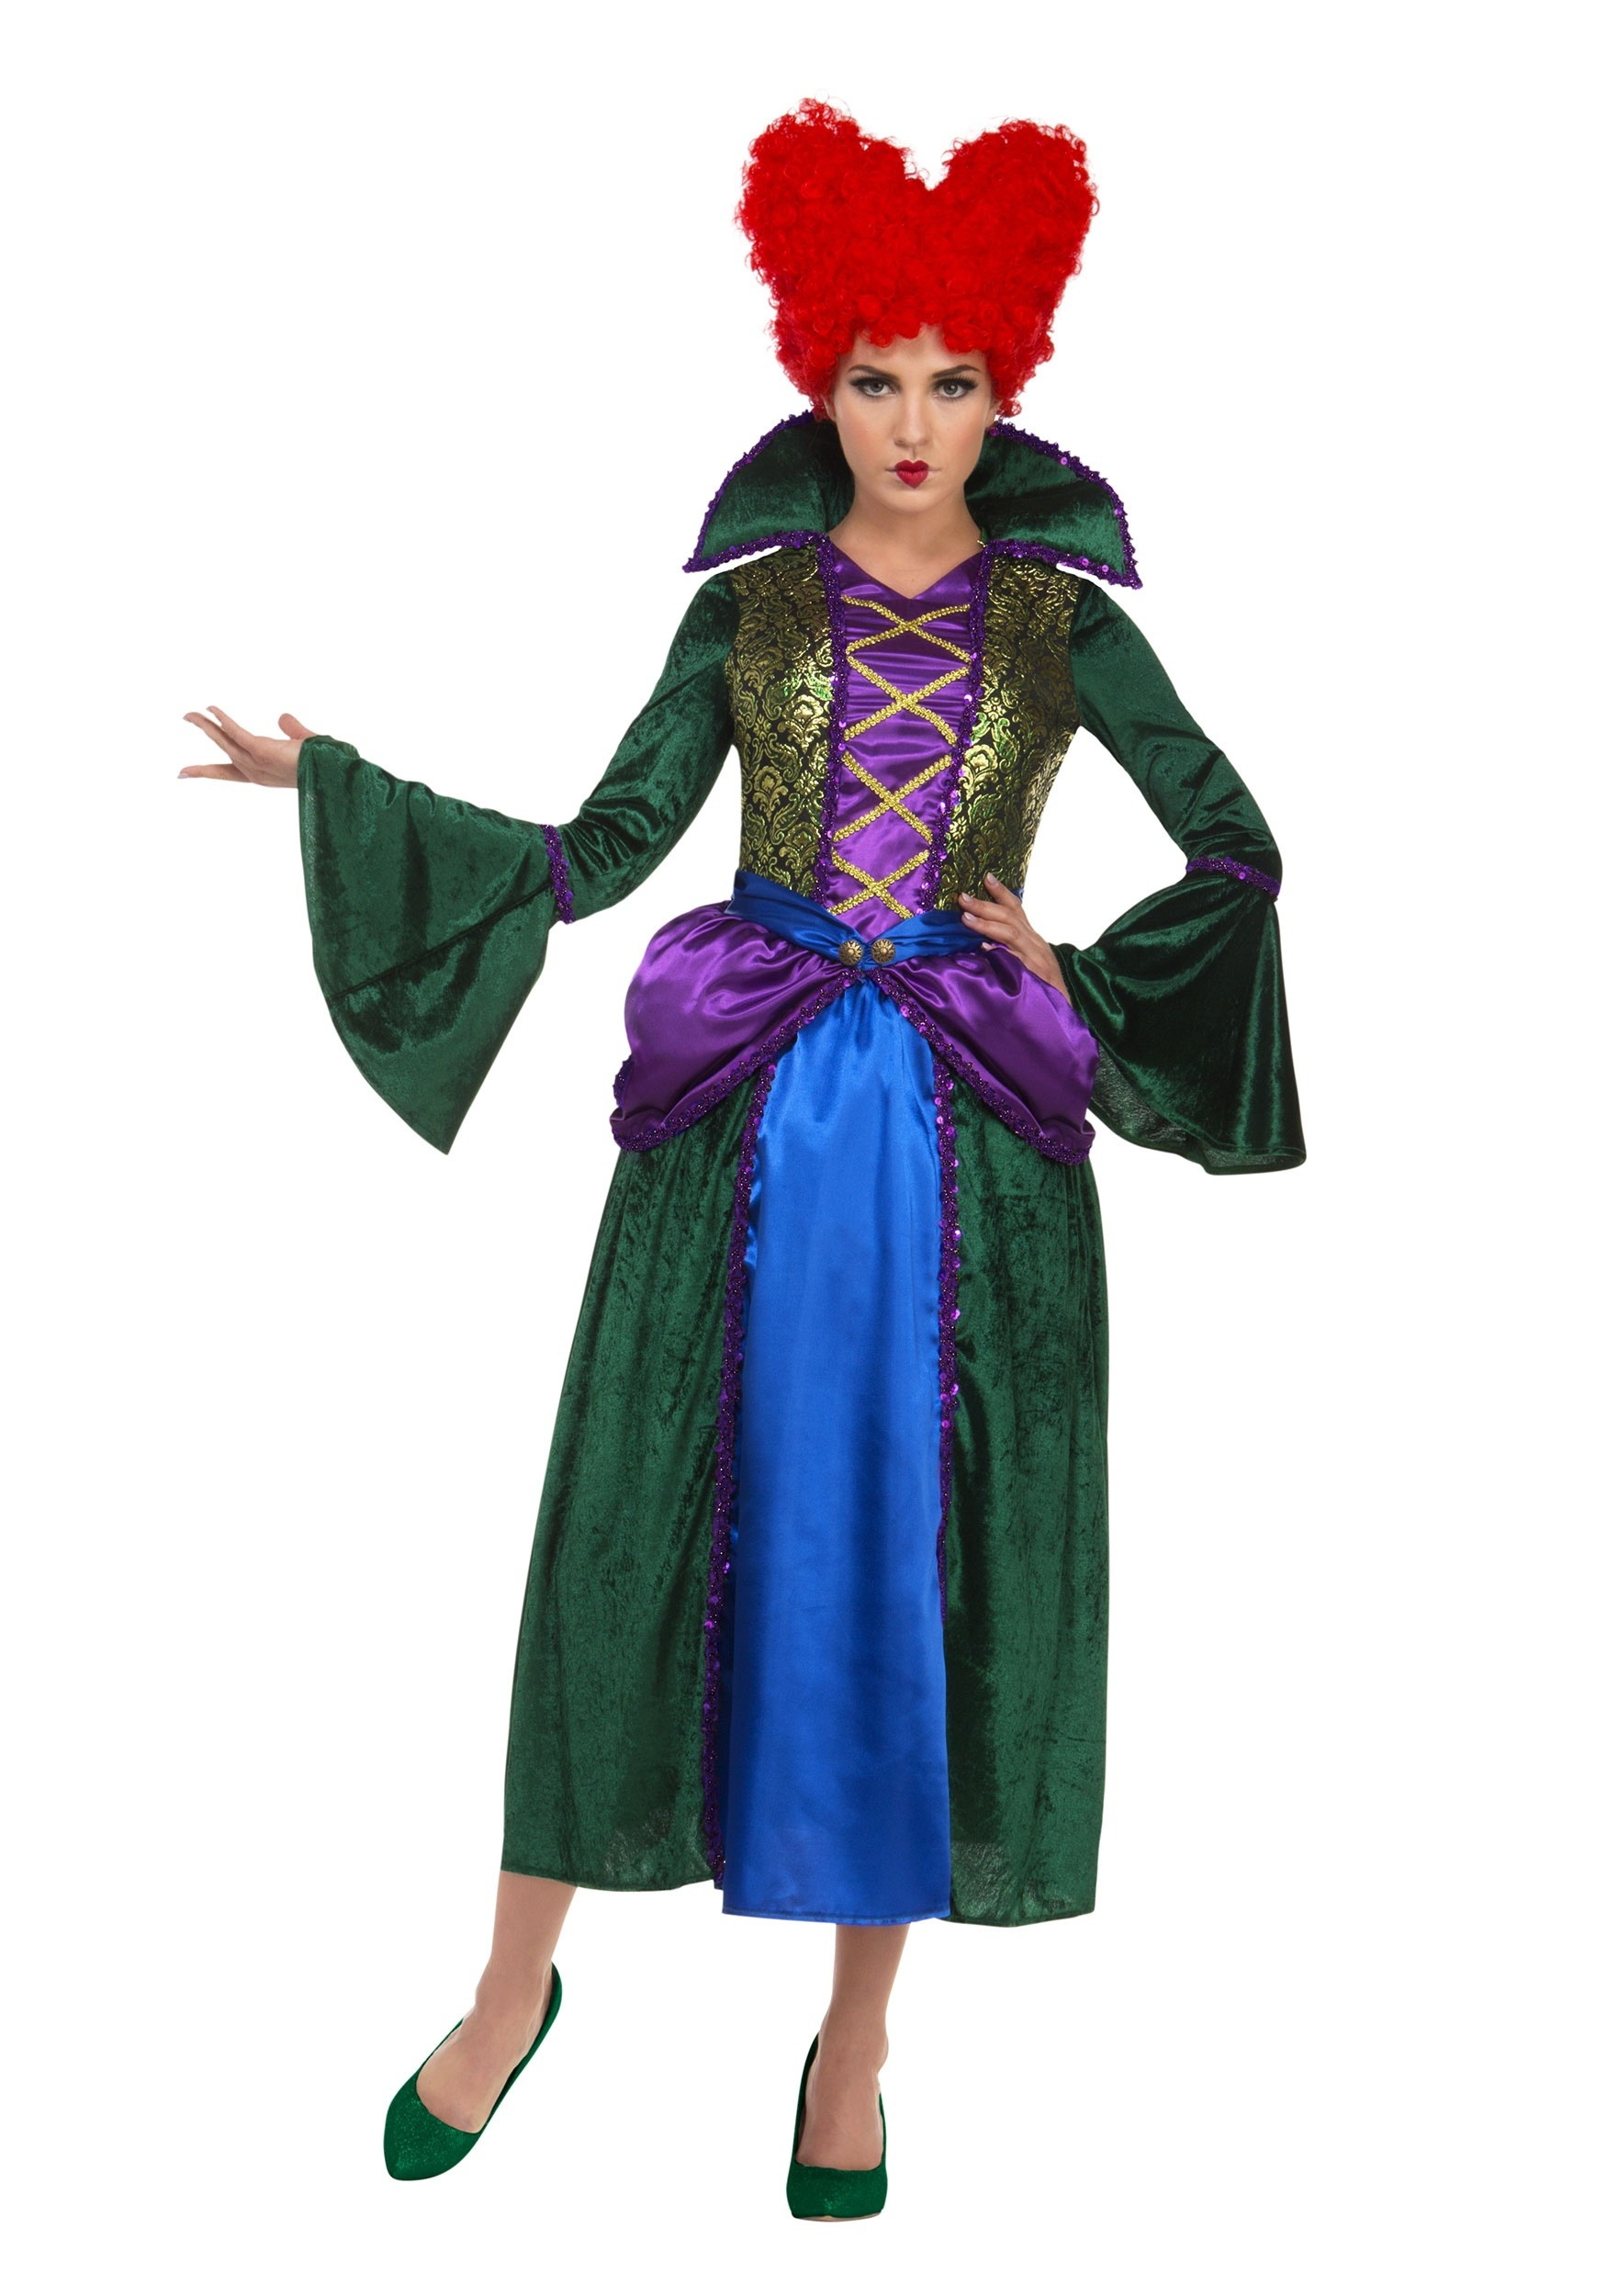 INOpets.com Anything for Pets Parents & Their Pets Bossy Salem Sister Witch Costume for Women